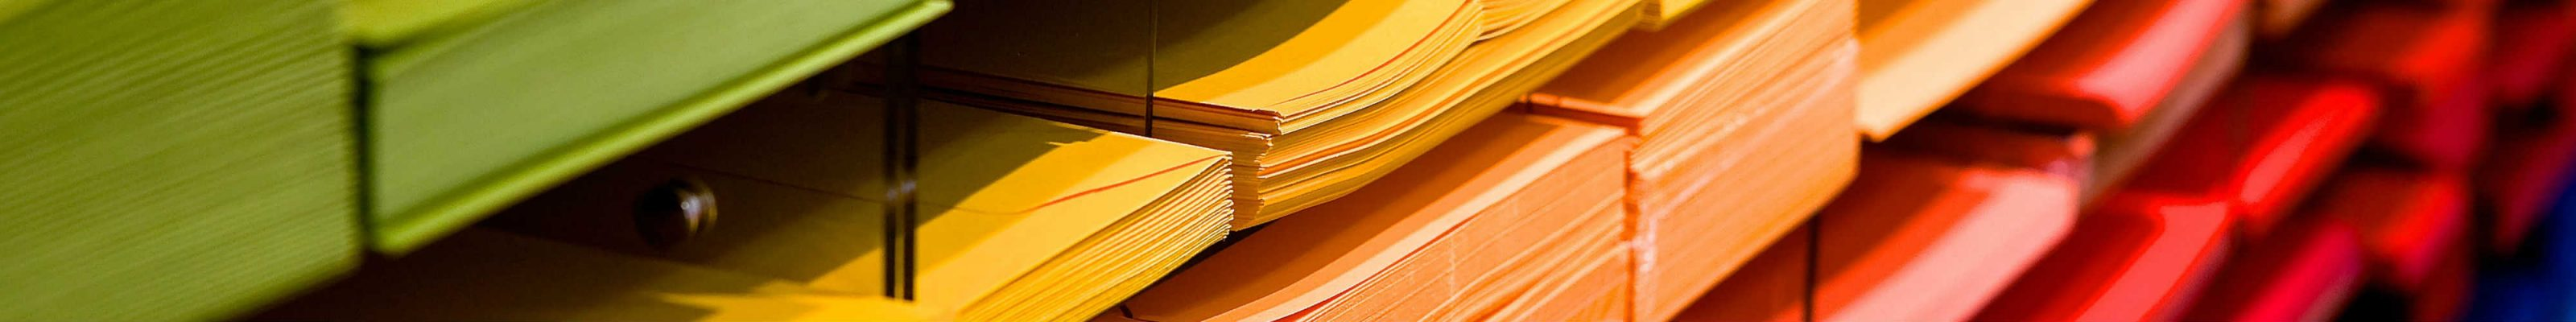 Piles of paper organised by colour